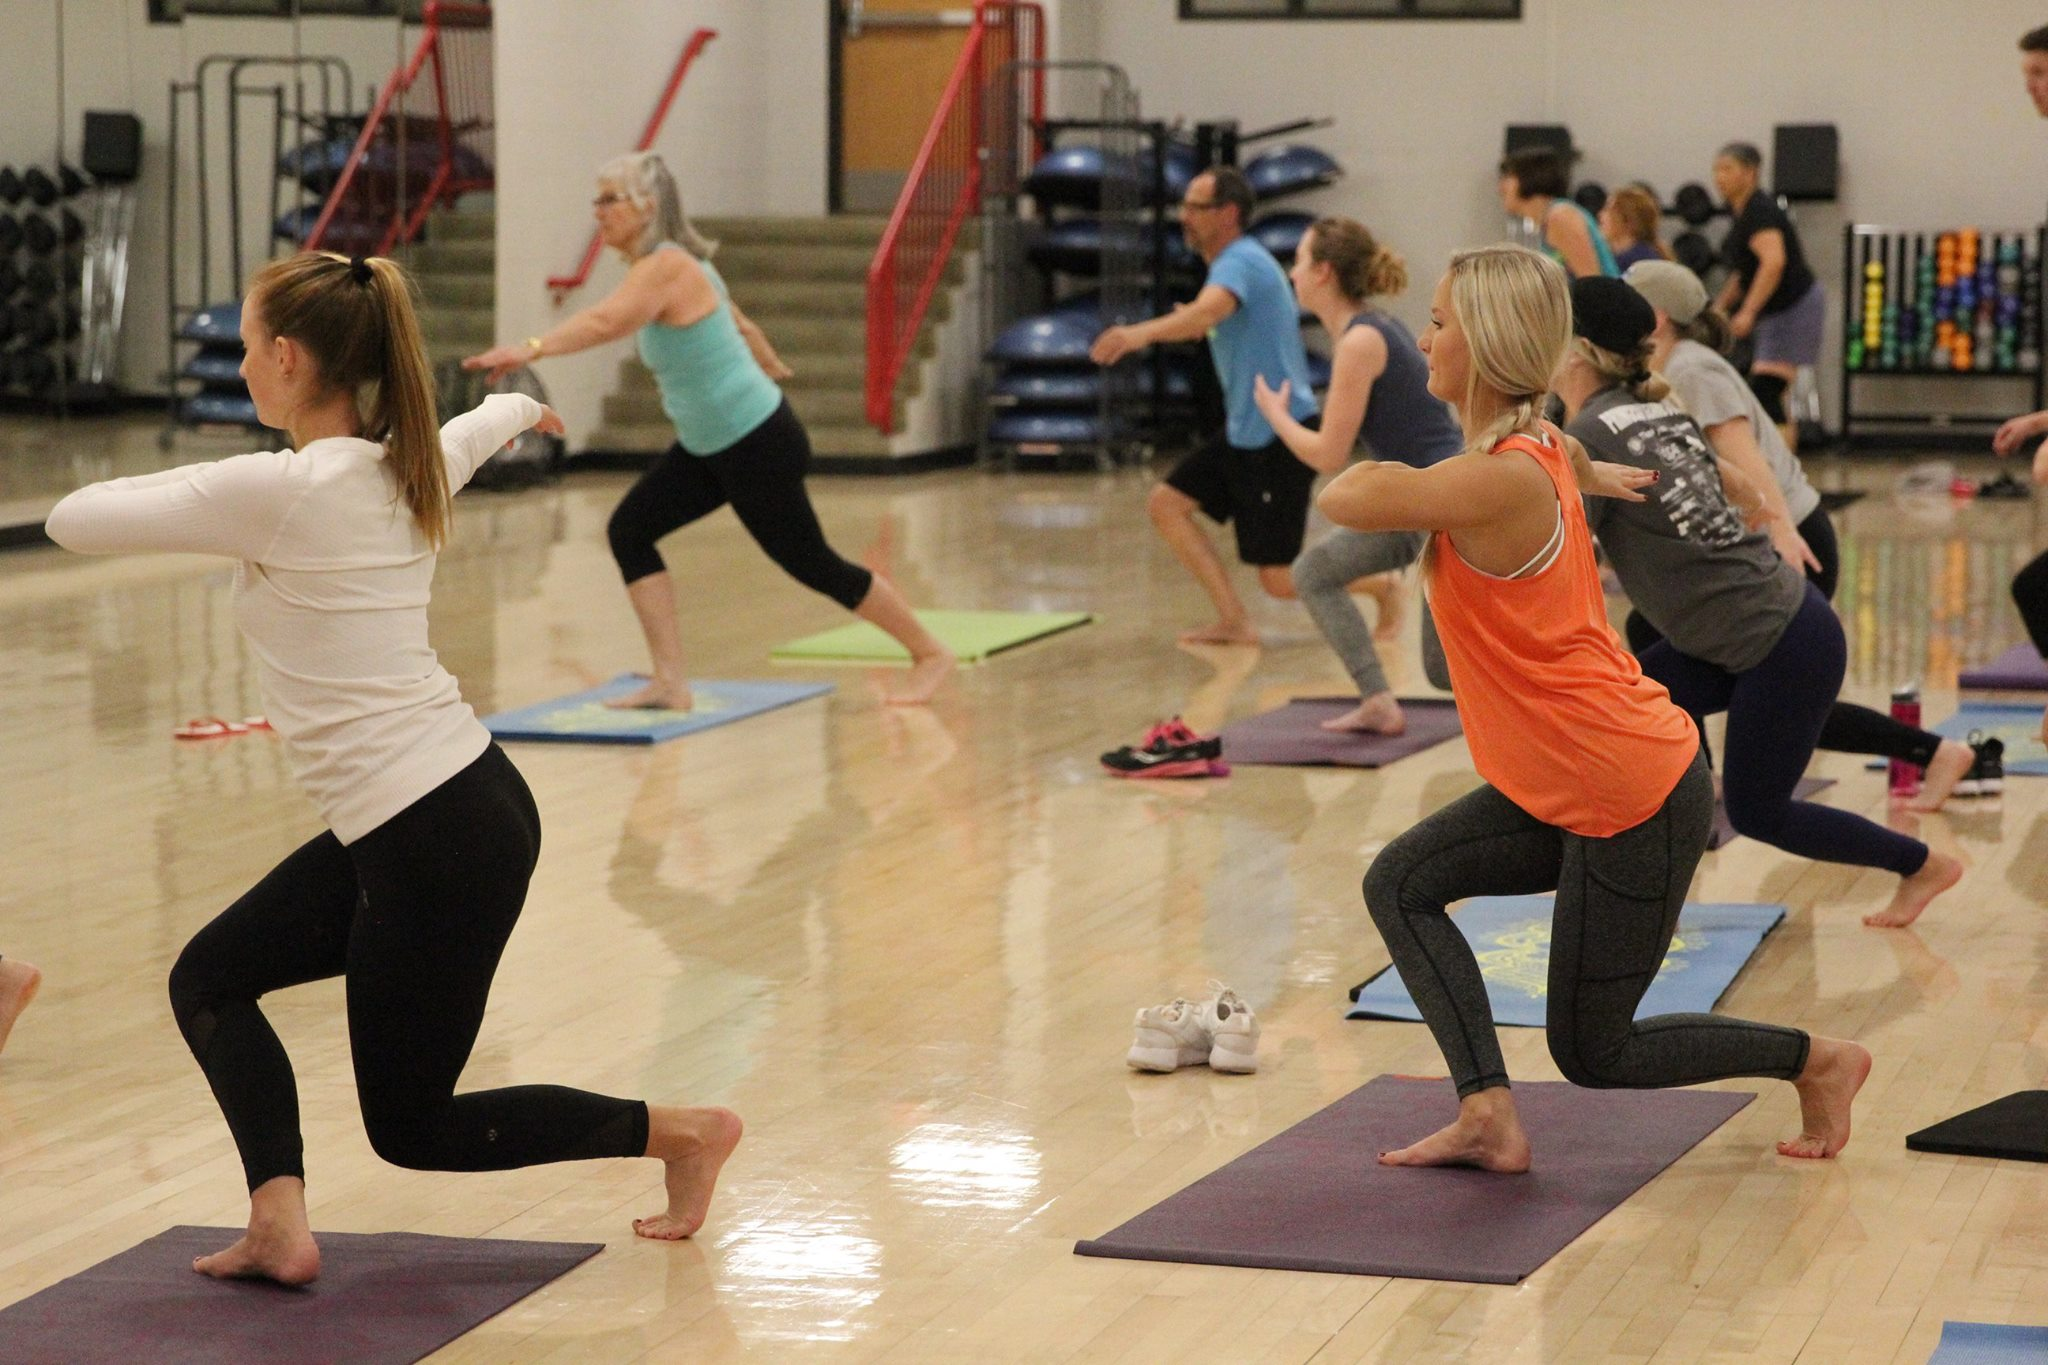 Now's a great time to try a new fitness class you've been curious about.